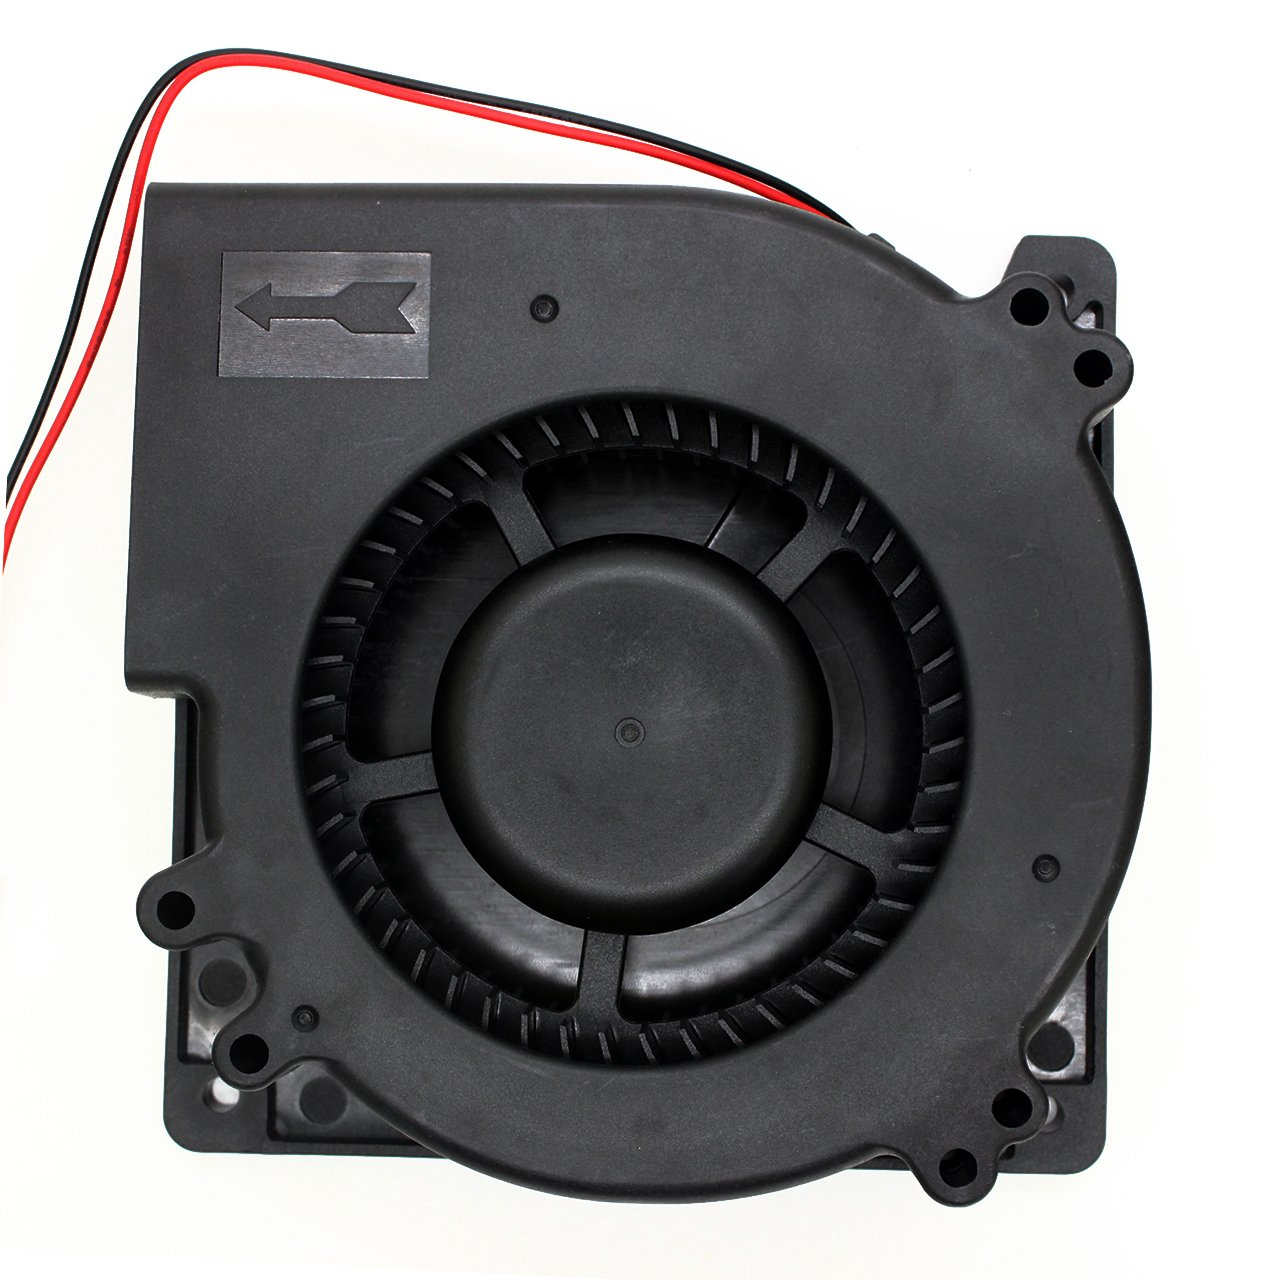 UTUO Brushless Radial Blower Dual Ball Bearing High Speed 12V DC Centrifugal Fan with XH-2.5 Plug 120mm by 120mm by 32mm (4.72x4.72x1.26 inch)